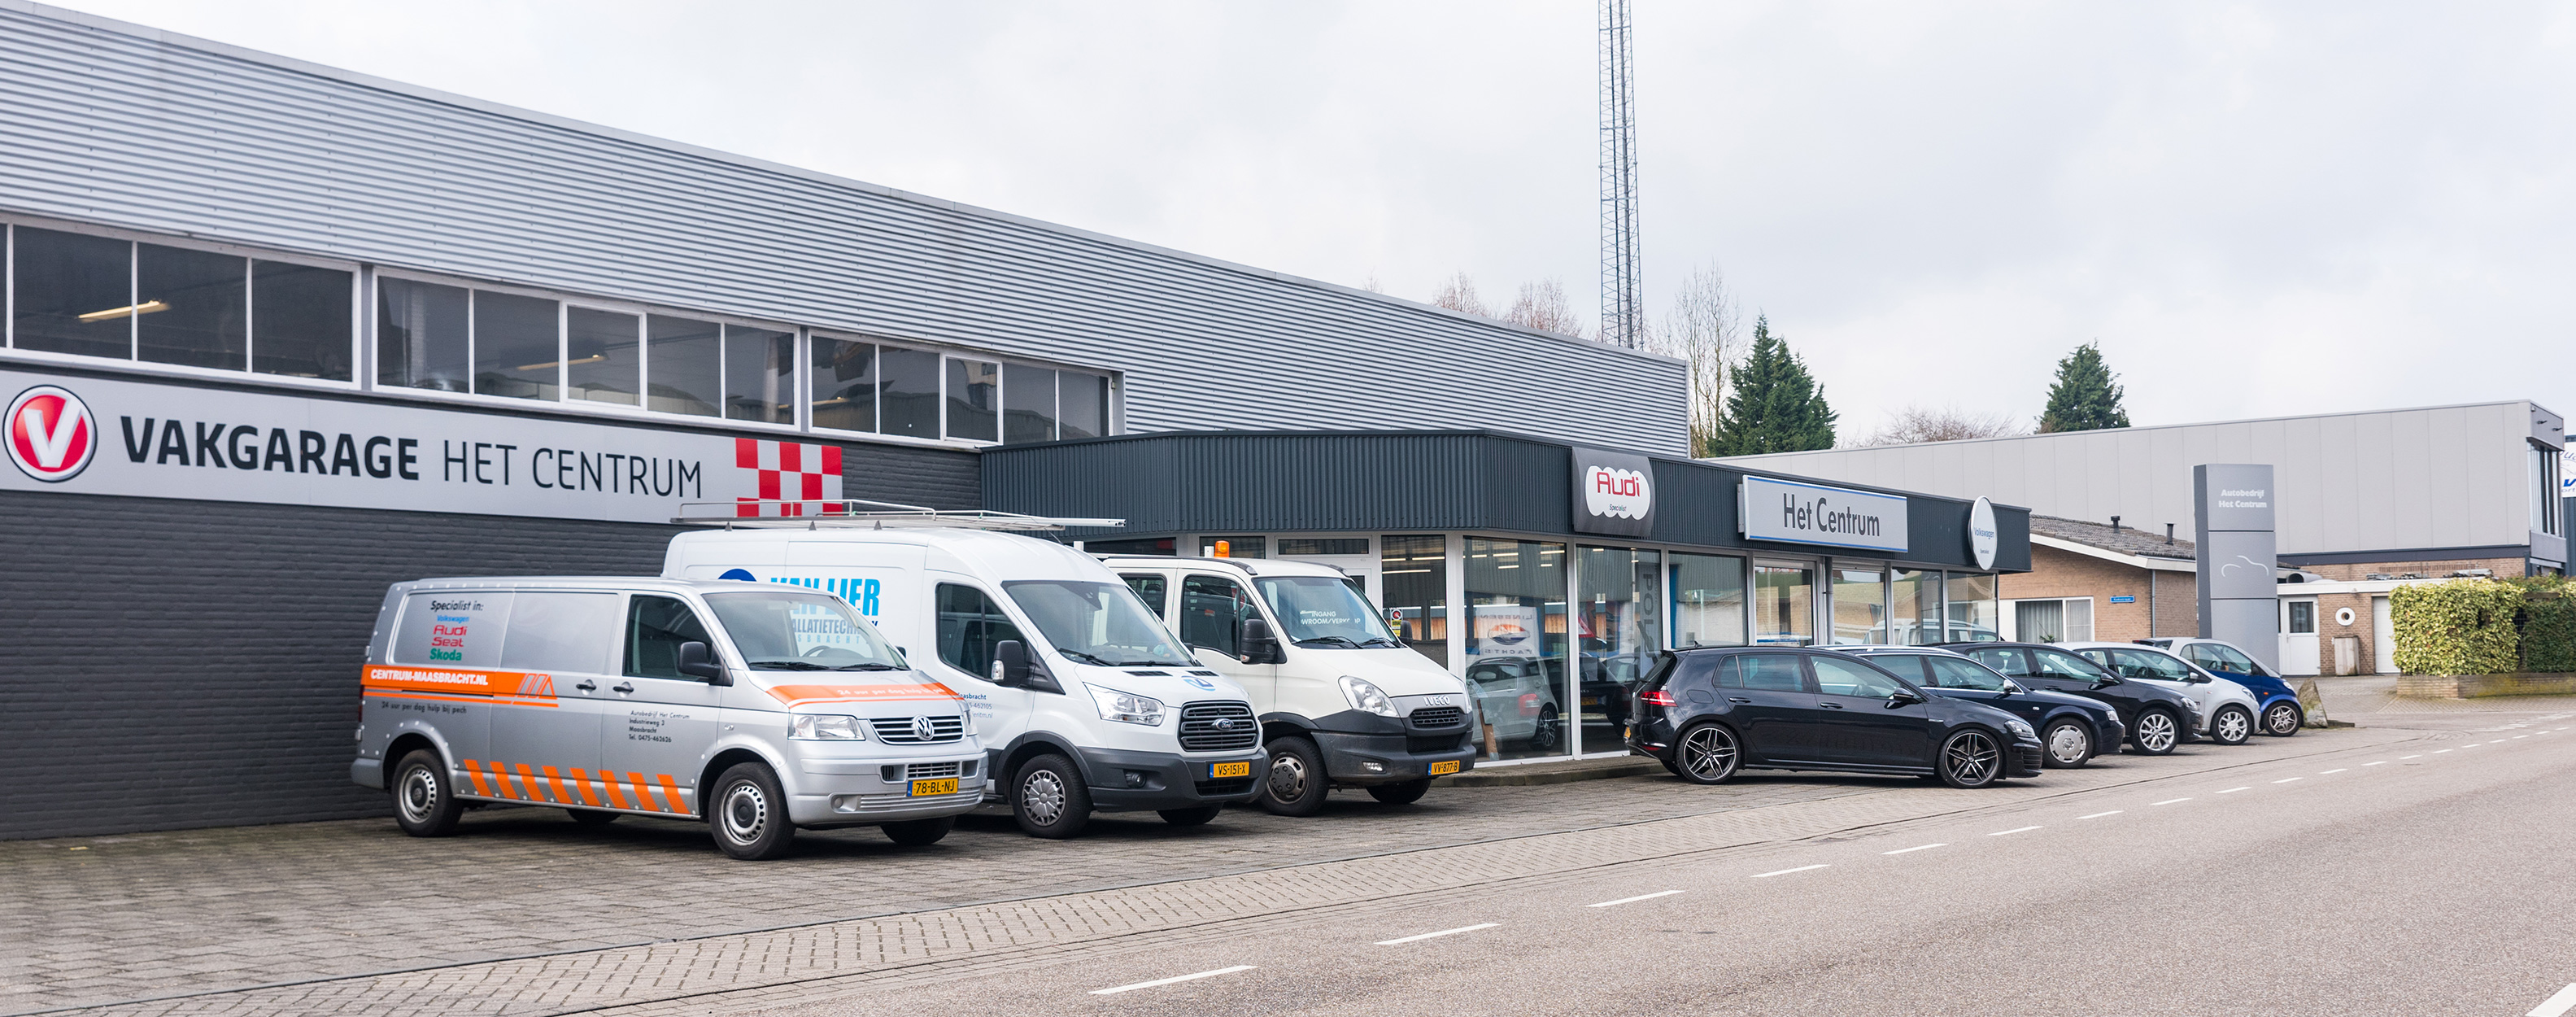 Lease Service Center Maasbracht, het Centrum